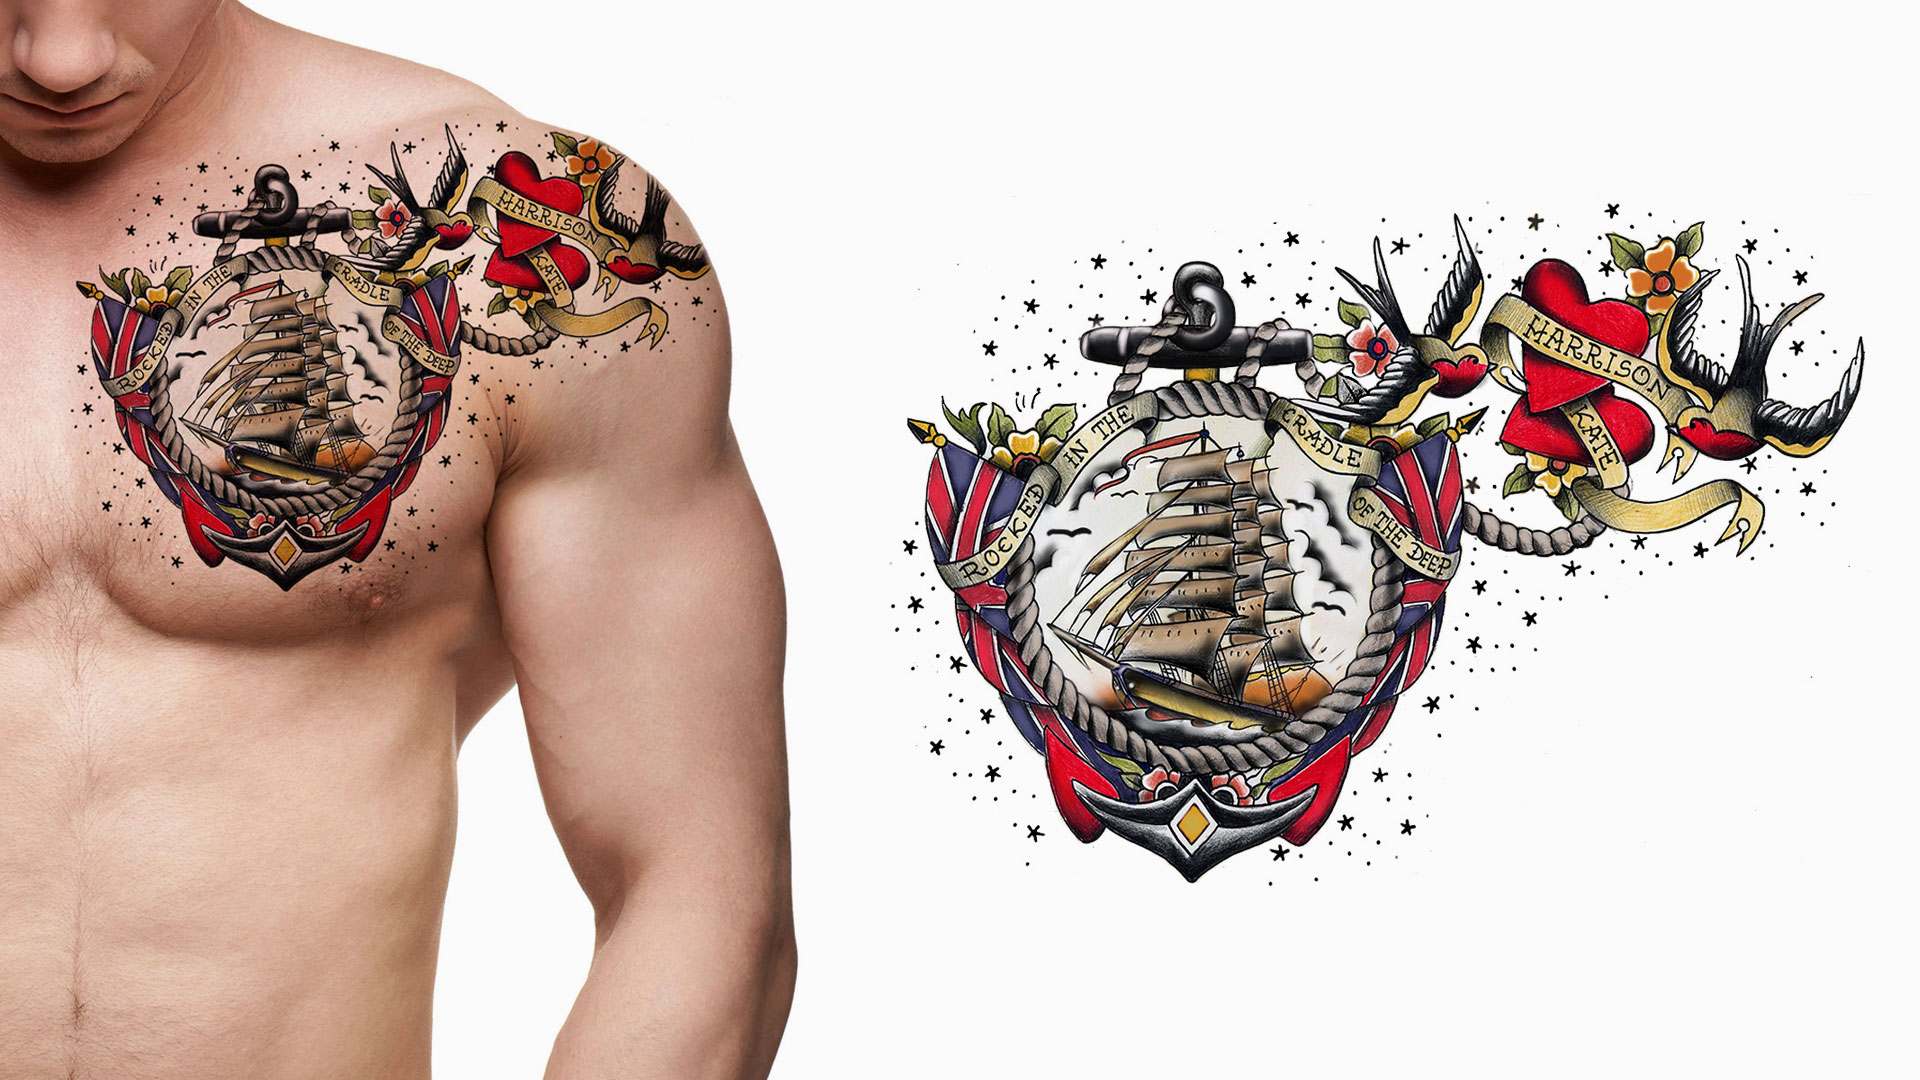 American Traditional tattoos are a hot trend. But these tattoos date back to the 19th century. Two major developments revolutionized the tattoo industry, allowing artists to document and solidify the ...